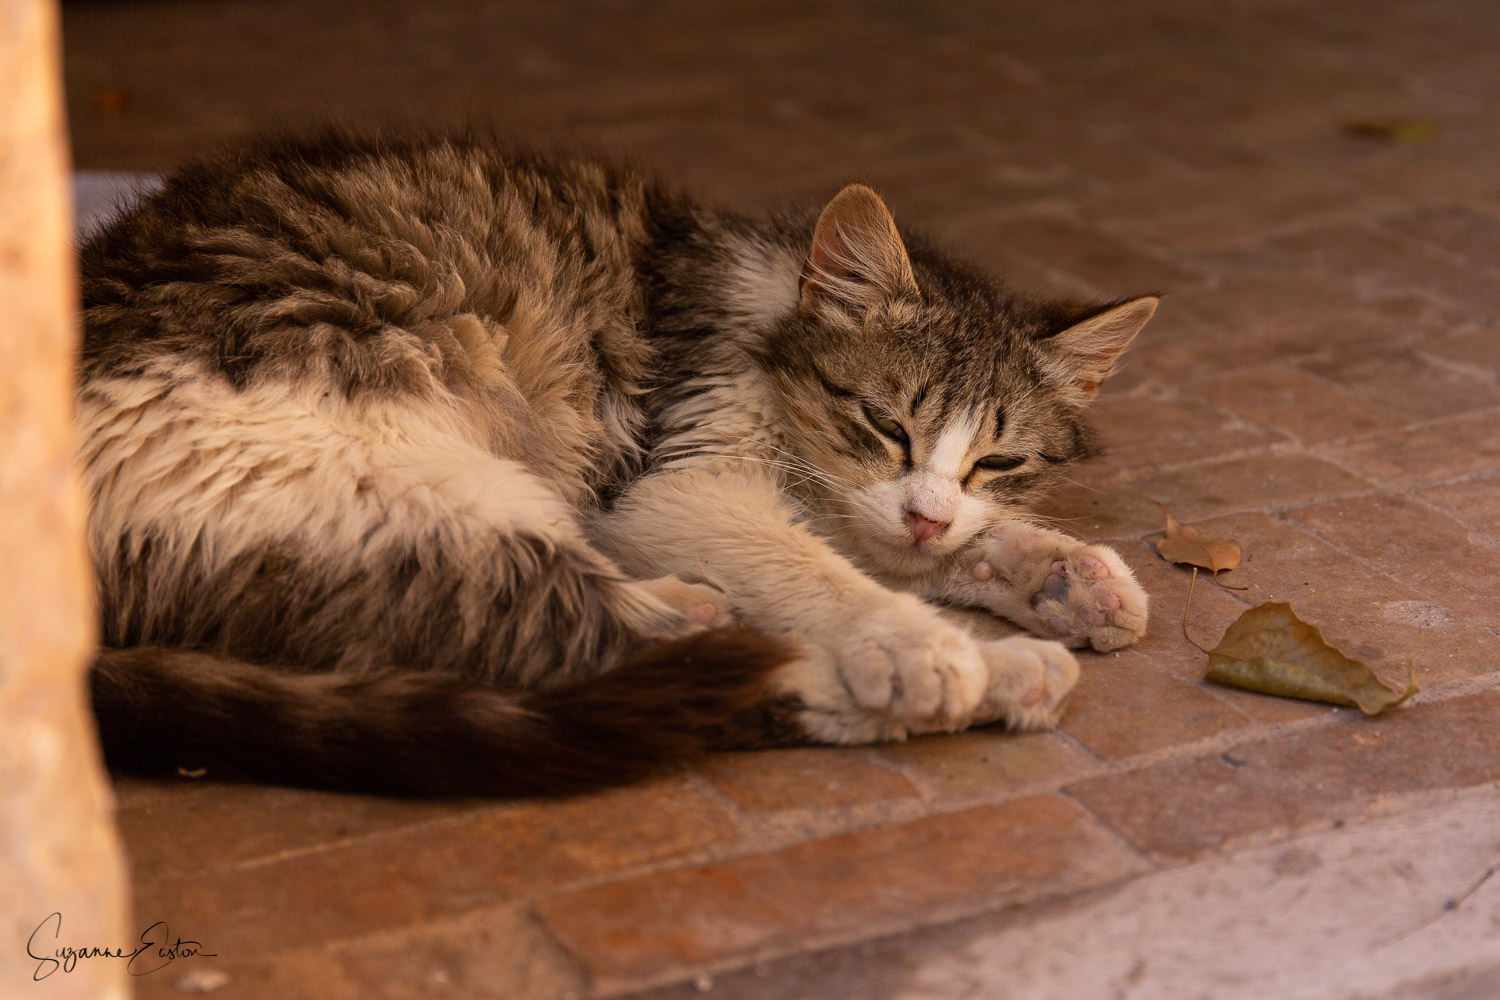 This tabby cat was snoozing contently in the grounds of the mosque in Marrakech. Food nearby and no scooters or vehicles to disturb his day.